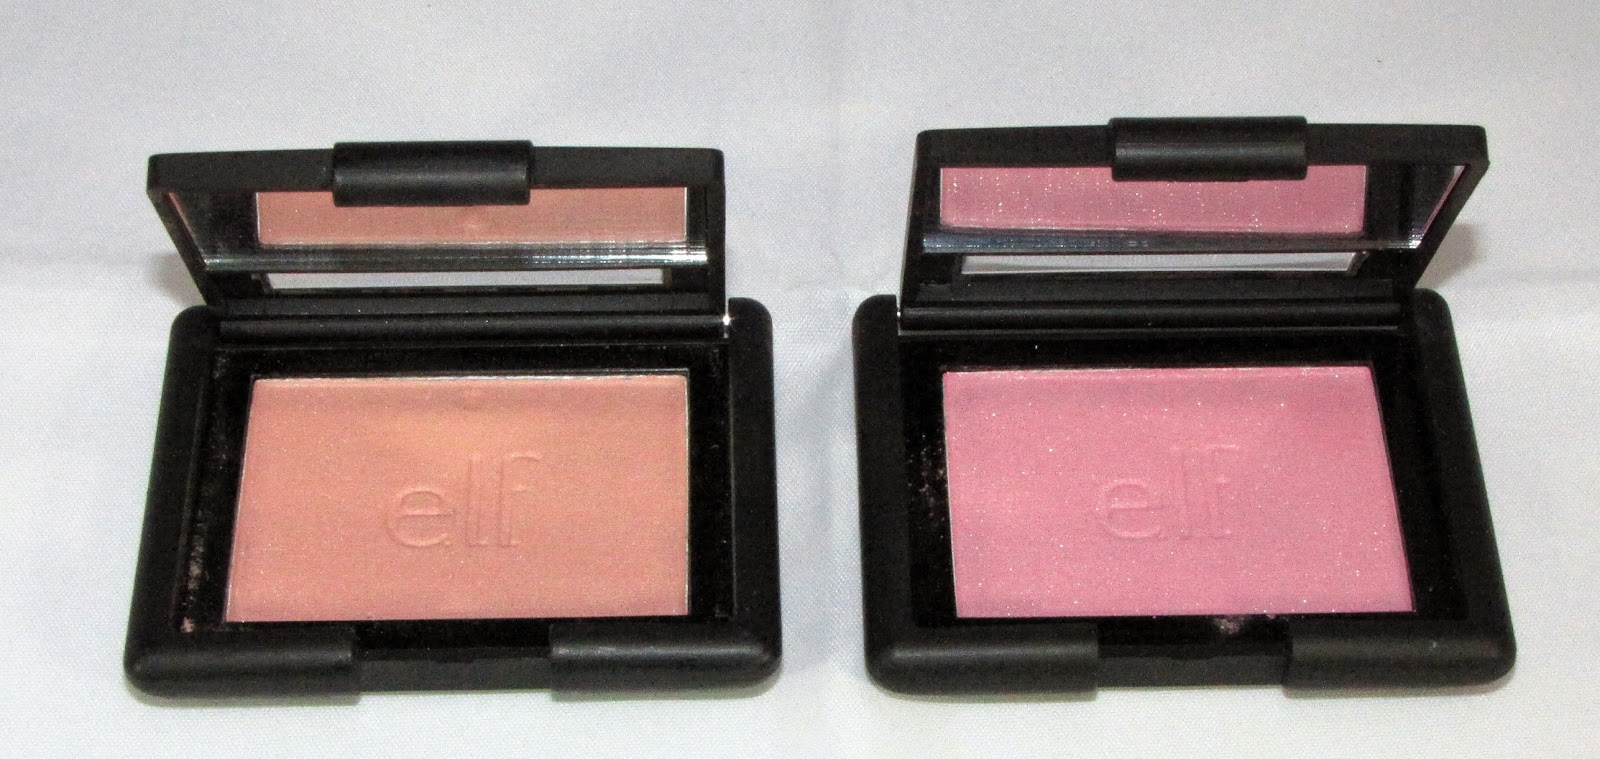 ELF Studio Blush in Tickled Pink and Fuchsia Fusion